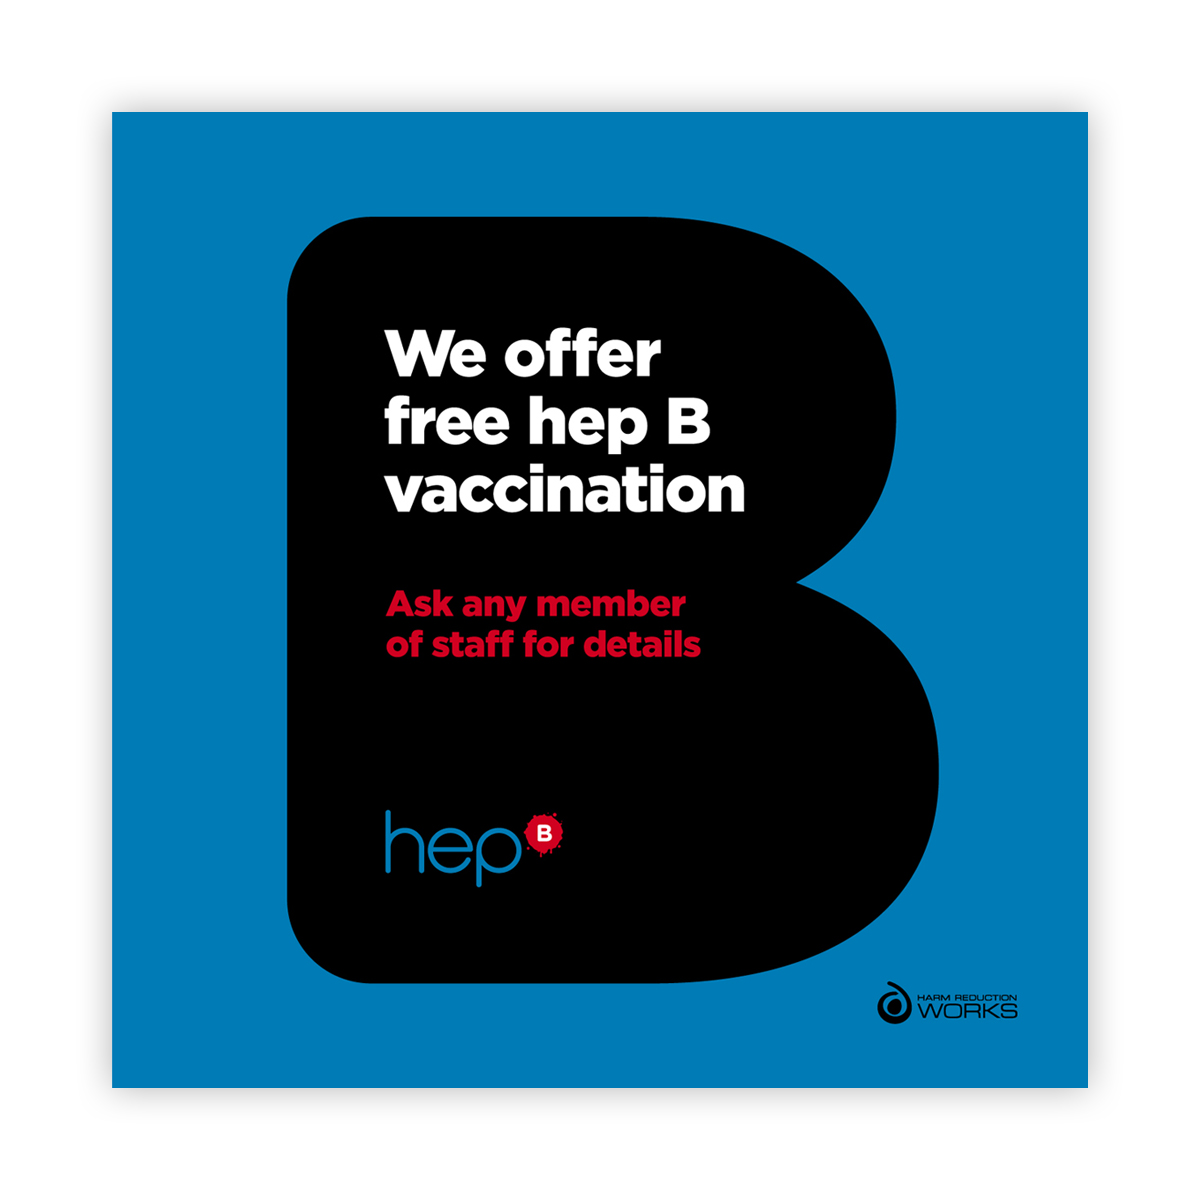 Hep B campaign: we offer hep B vaccination sign